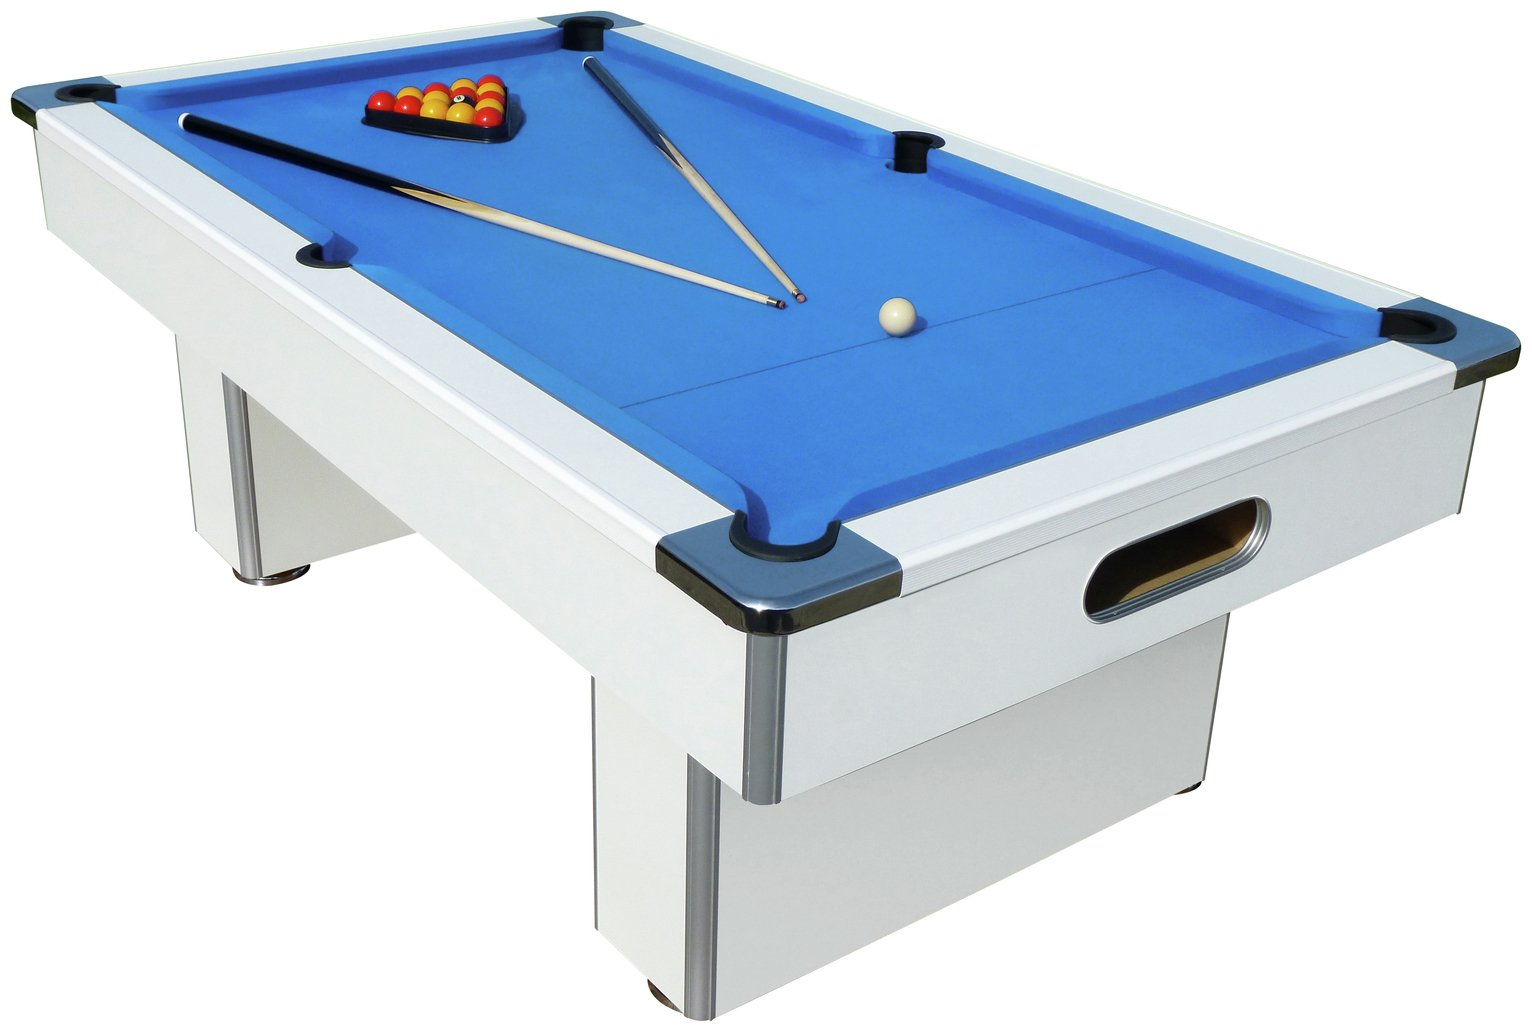 Mightymast Leisure Mightymast 7ft Speedster Slate Bed White Pool Table